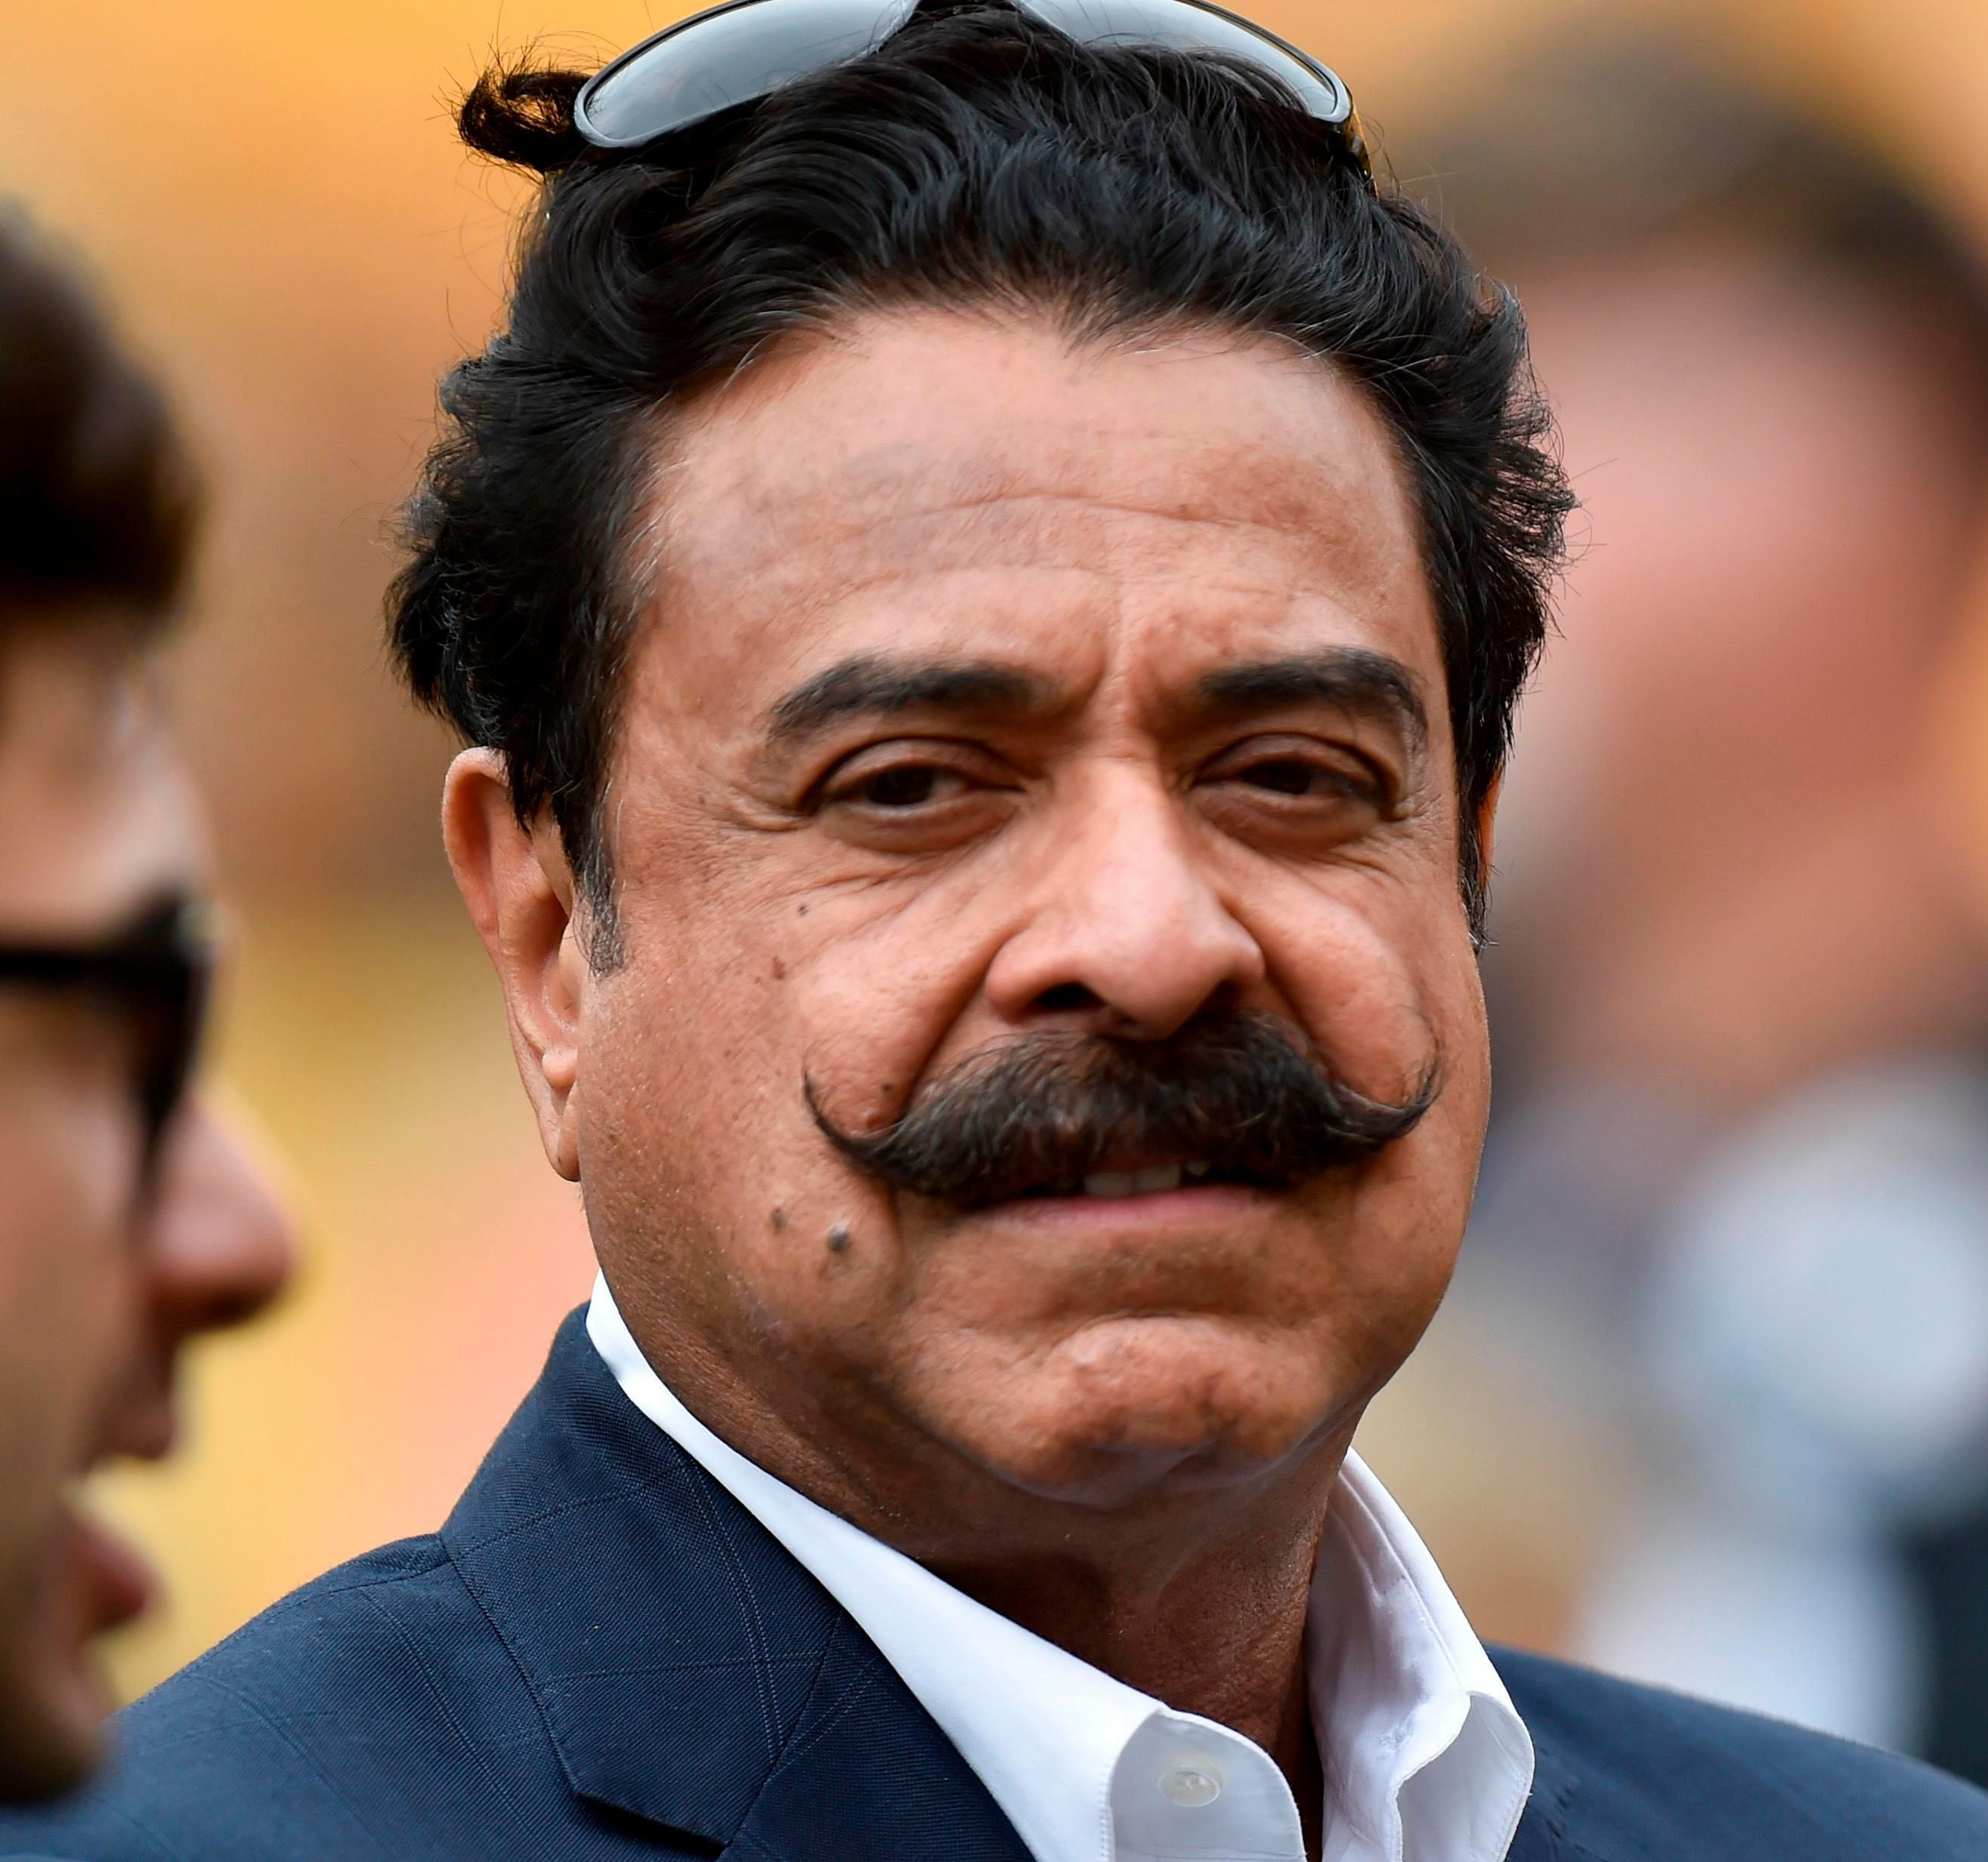 Shahid Khan, owner of both Fulham and Jacksonville Jaguars, is looking to move his NFL base to London